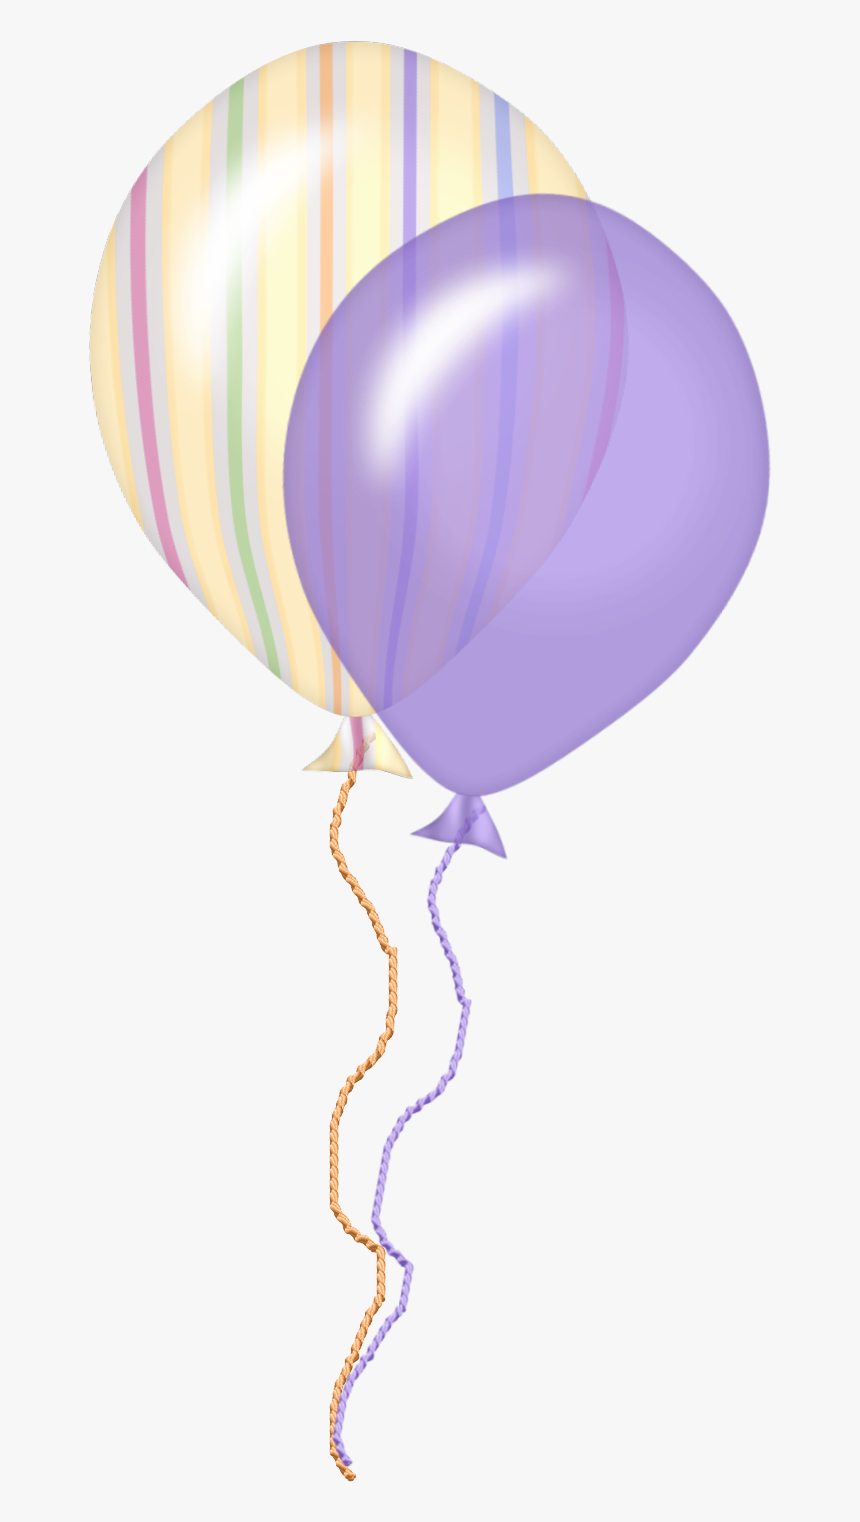 Photo By Duda Cavalcanti - Balloon, HD Png Download, Free Download